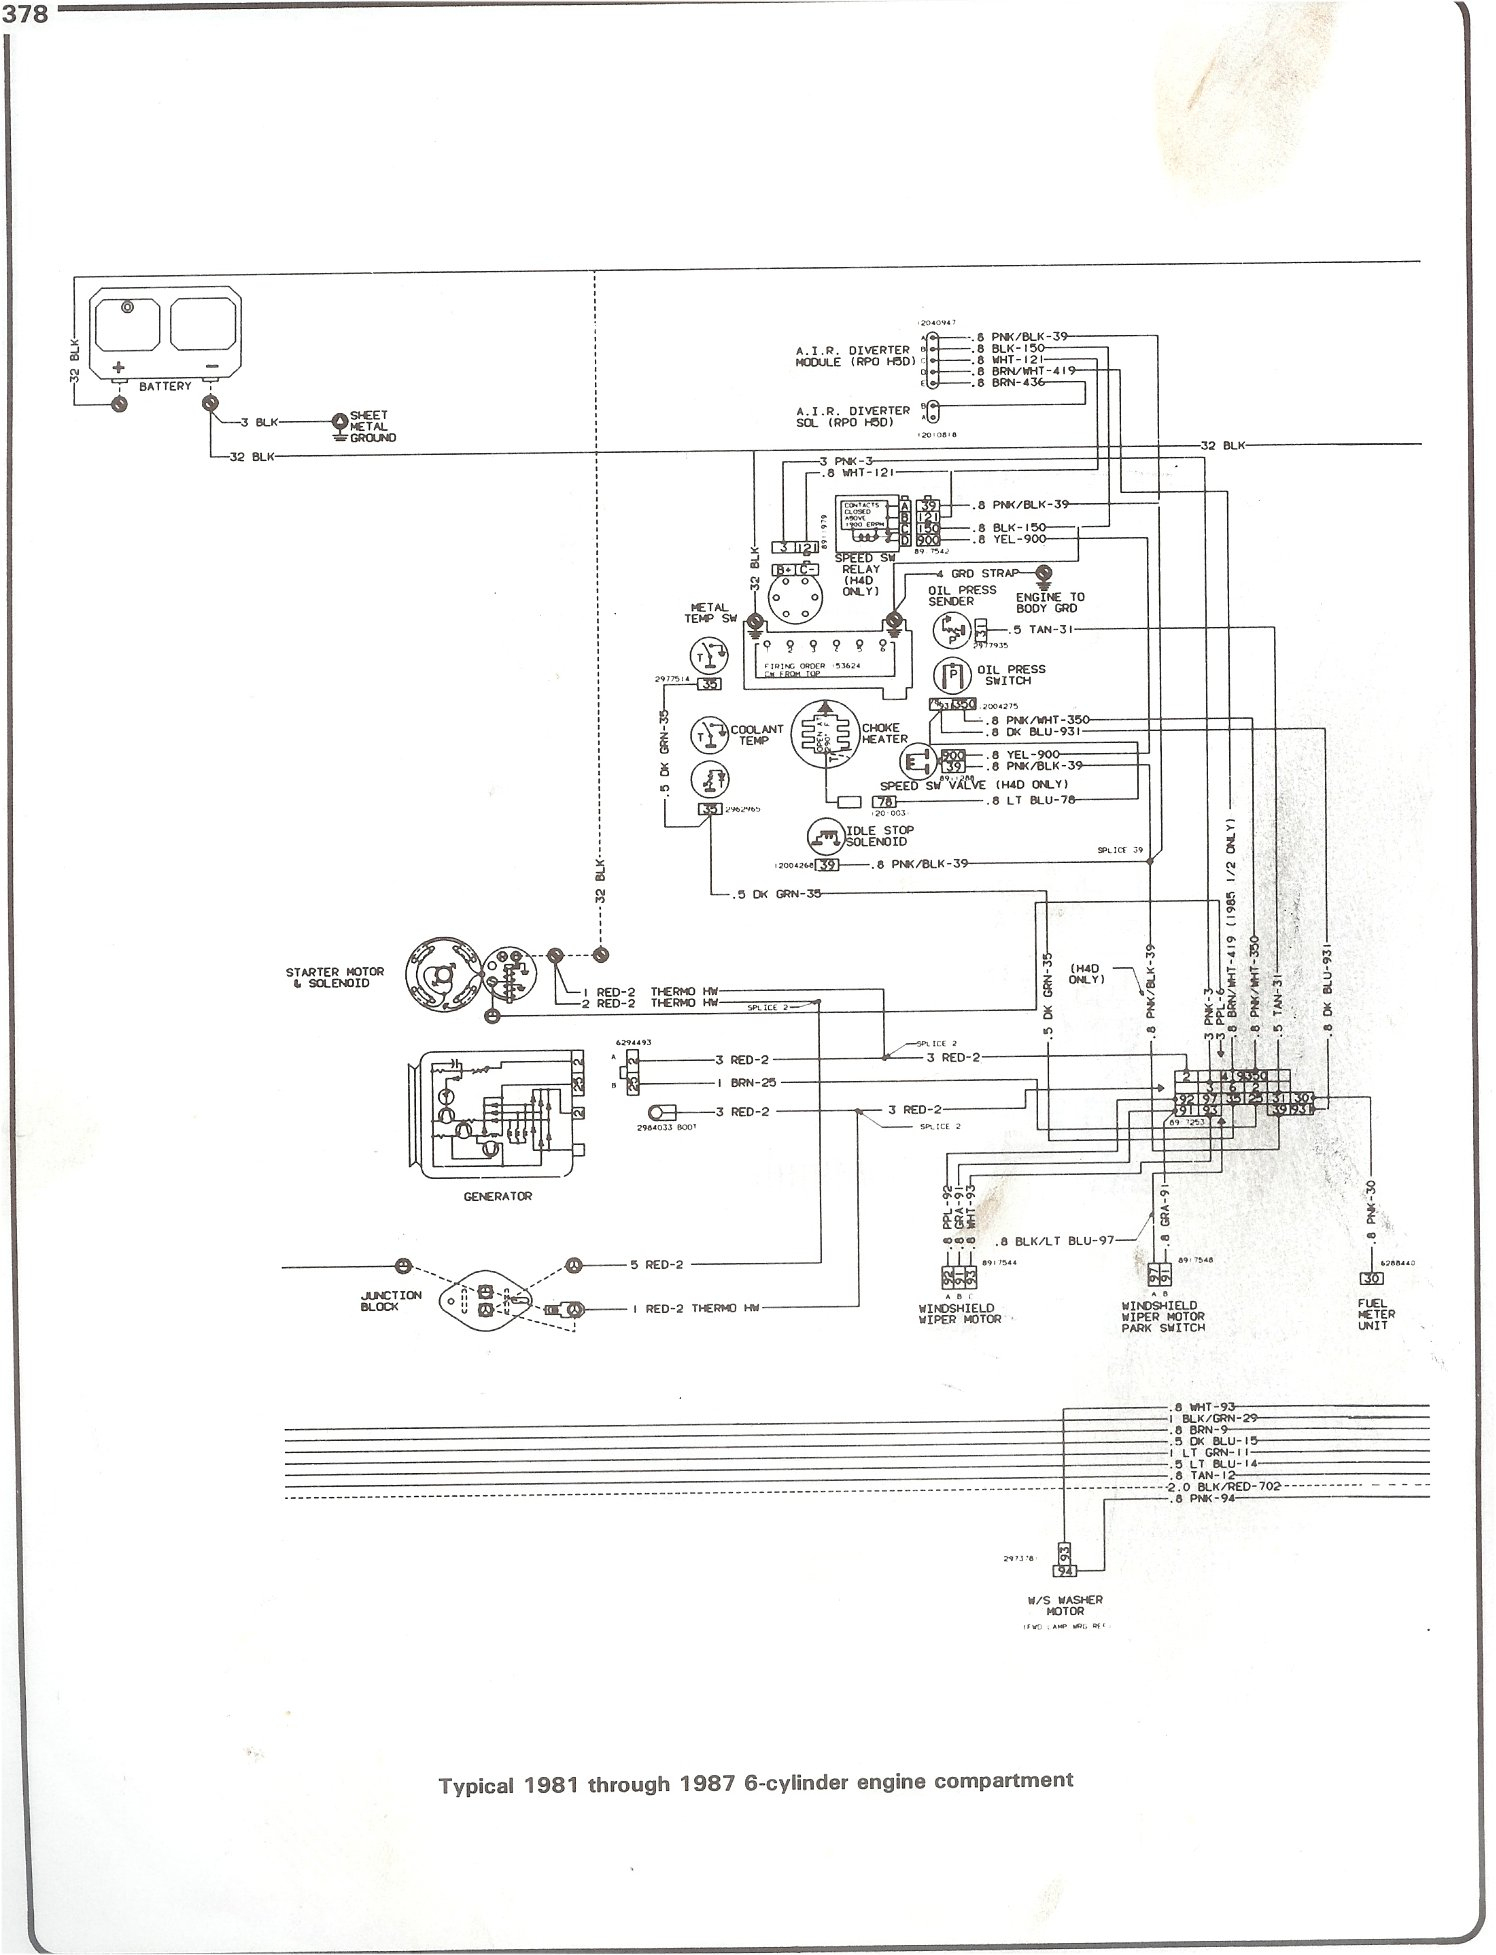 1987 Silverado Wiring Diagram - Data Wiring Diagram Today - 87 Chevy Truck Wiring Diagram